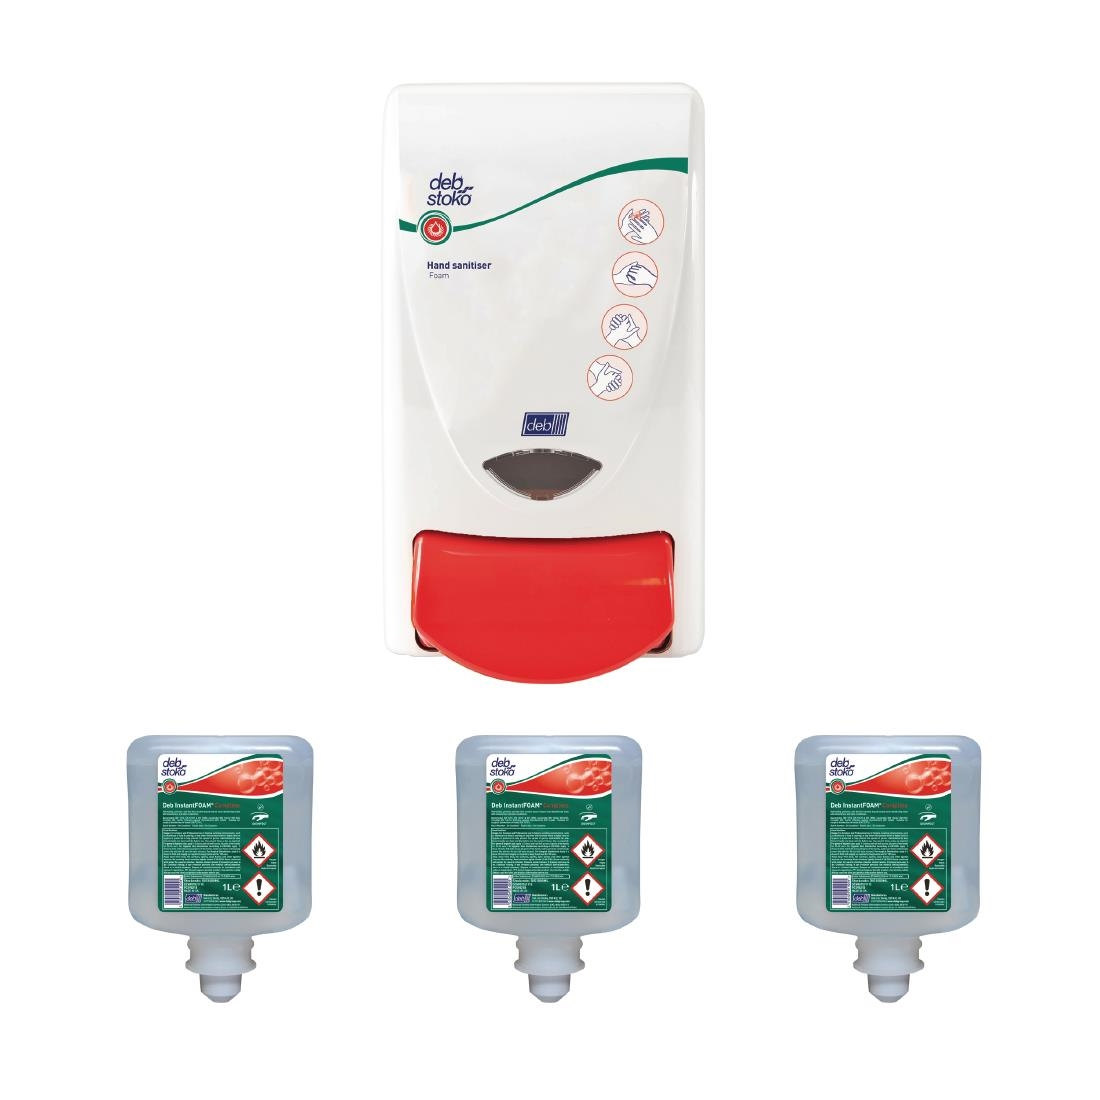 Image of Deb Hand Sanitiser Dispenser and 3 Unperfumed Foam Hand Sanitisers 1Ltr Pack of 3